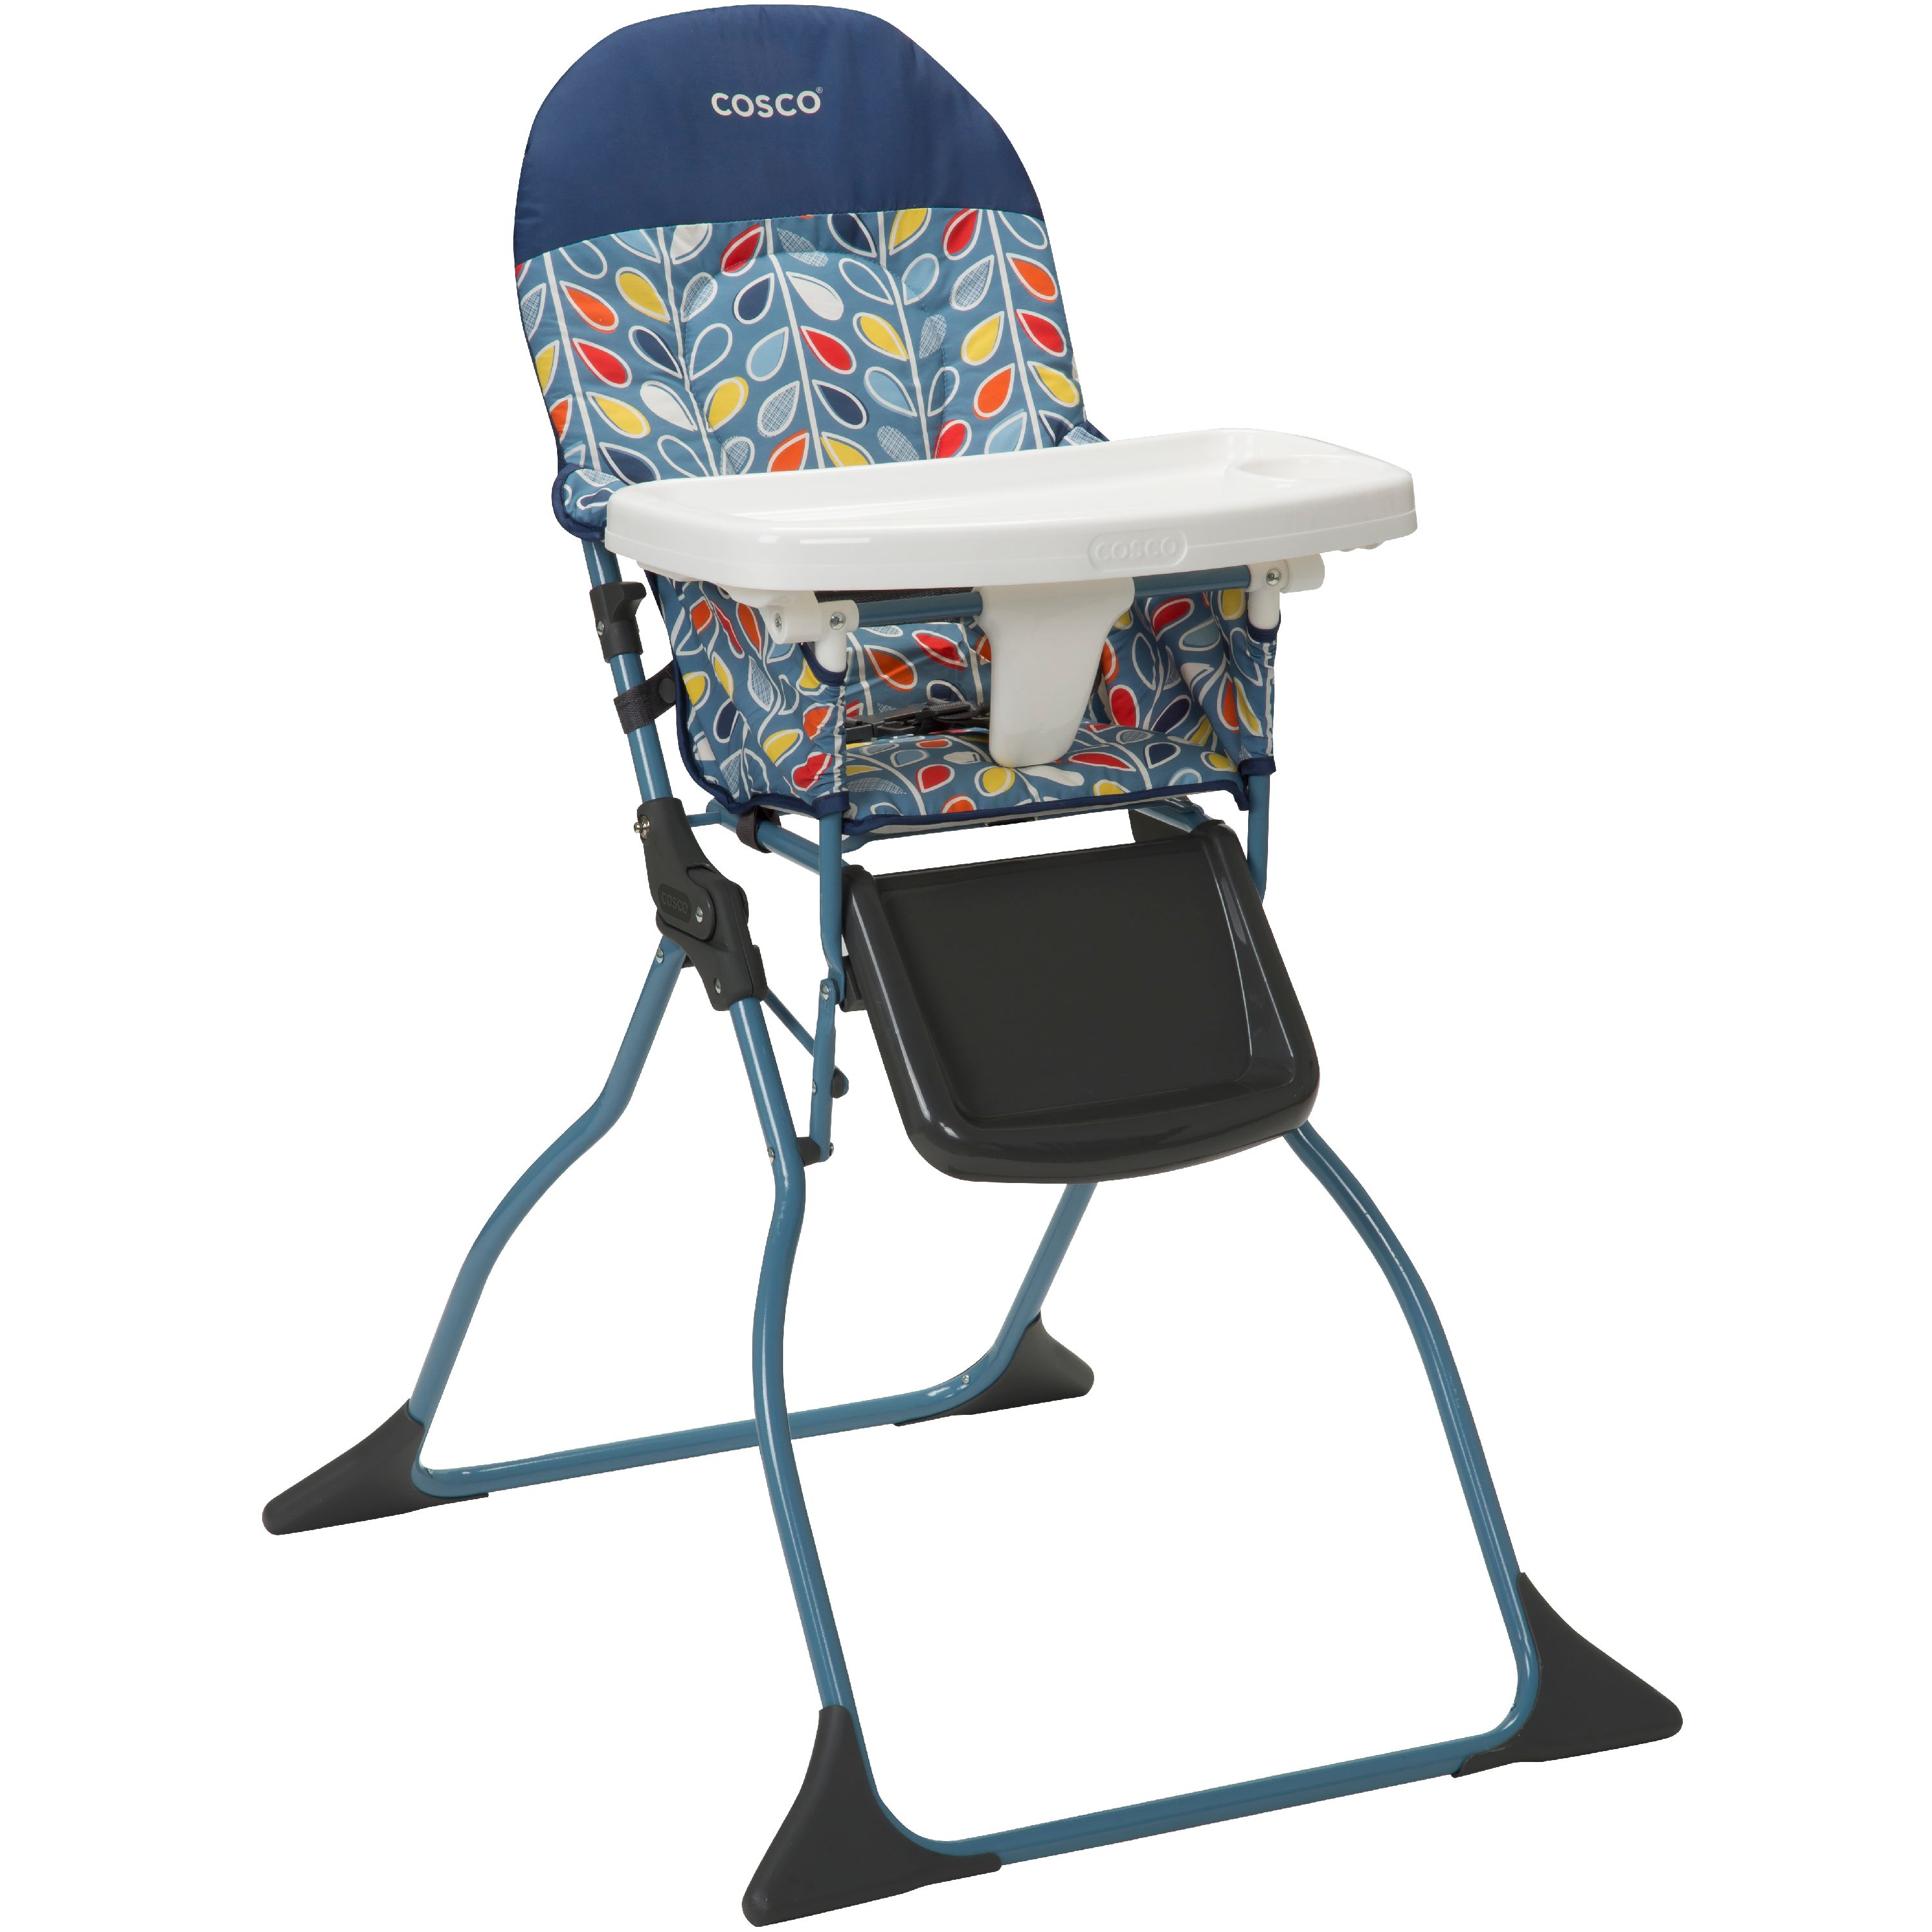 Cosco Simple Fold™ Full Size High Chair with Adjustable Tray, Leafy